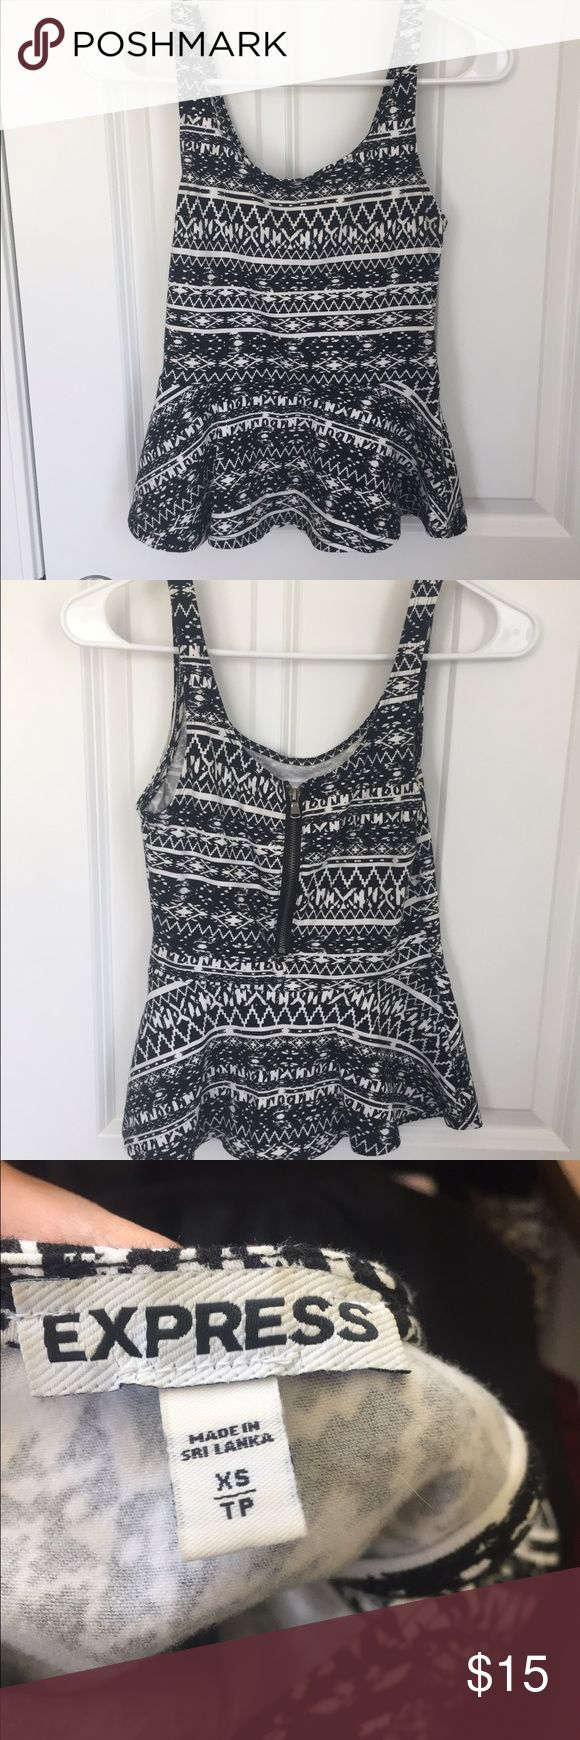 Black & white Aztec print express peplum top Black & white Aztec print express peplum top xs with a zip up back Express Tops Blouses